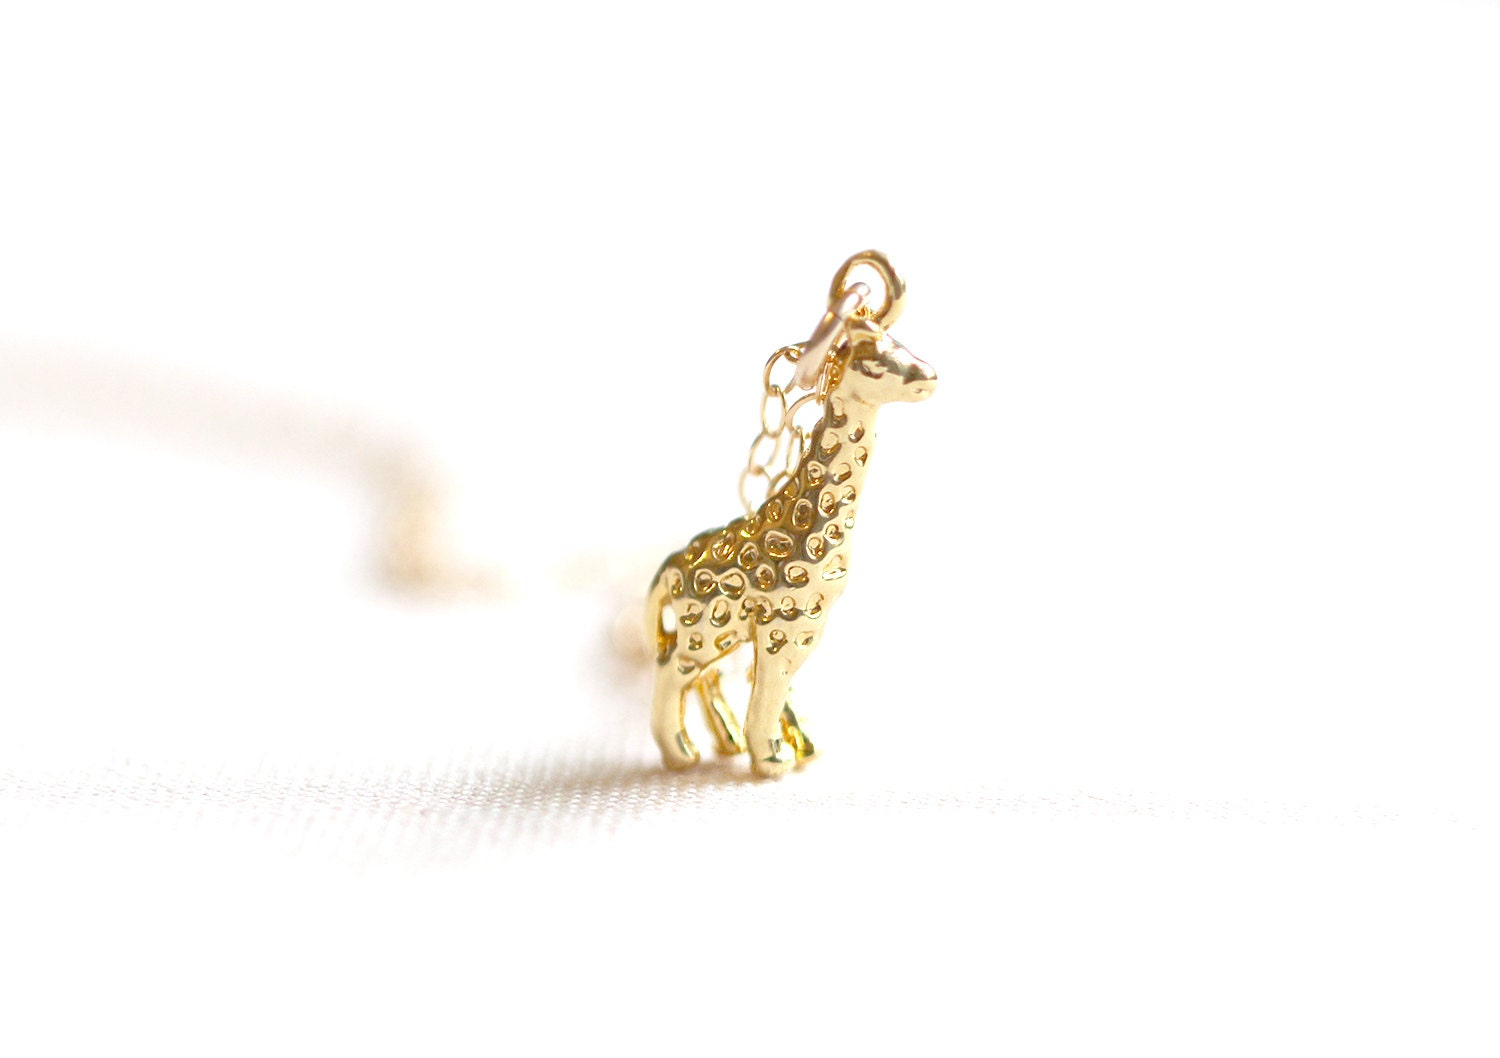 pendant sterling silver mv necklace diamonds kay tw kaystore to giraffe gold en ct zm hover zoom